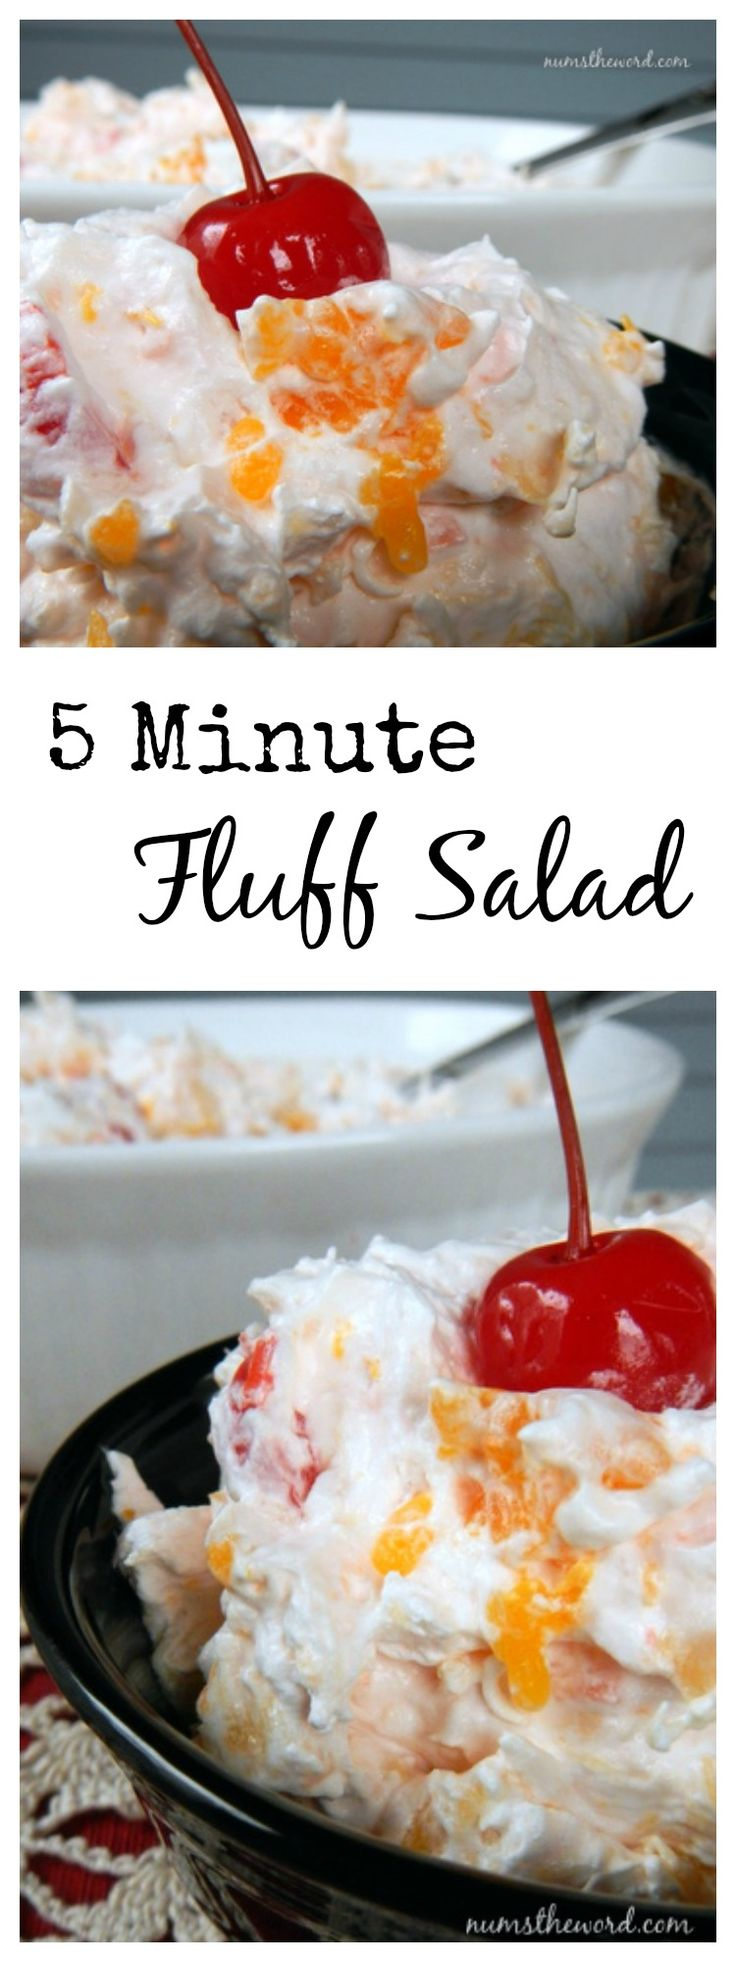 5 Minute Fluff Salad - This is so good!  5 ingredients you already have in your pantry and fridge and ready in 5 minutes.  My family LOVED this and will be making it again!  Perfect fruit salad side dish! #recipe #fruitsalad #sidedish